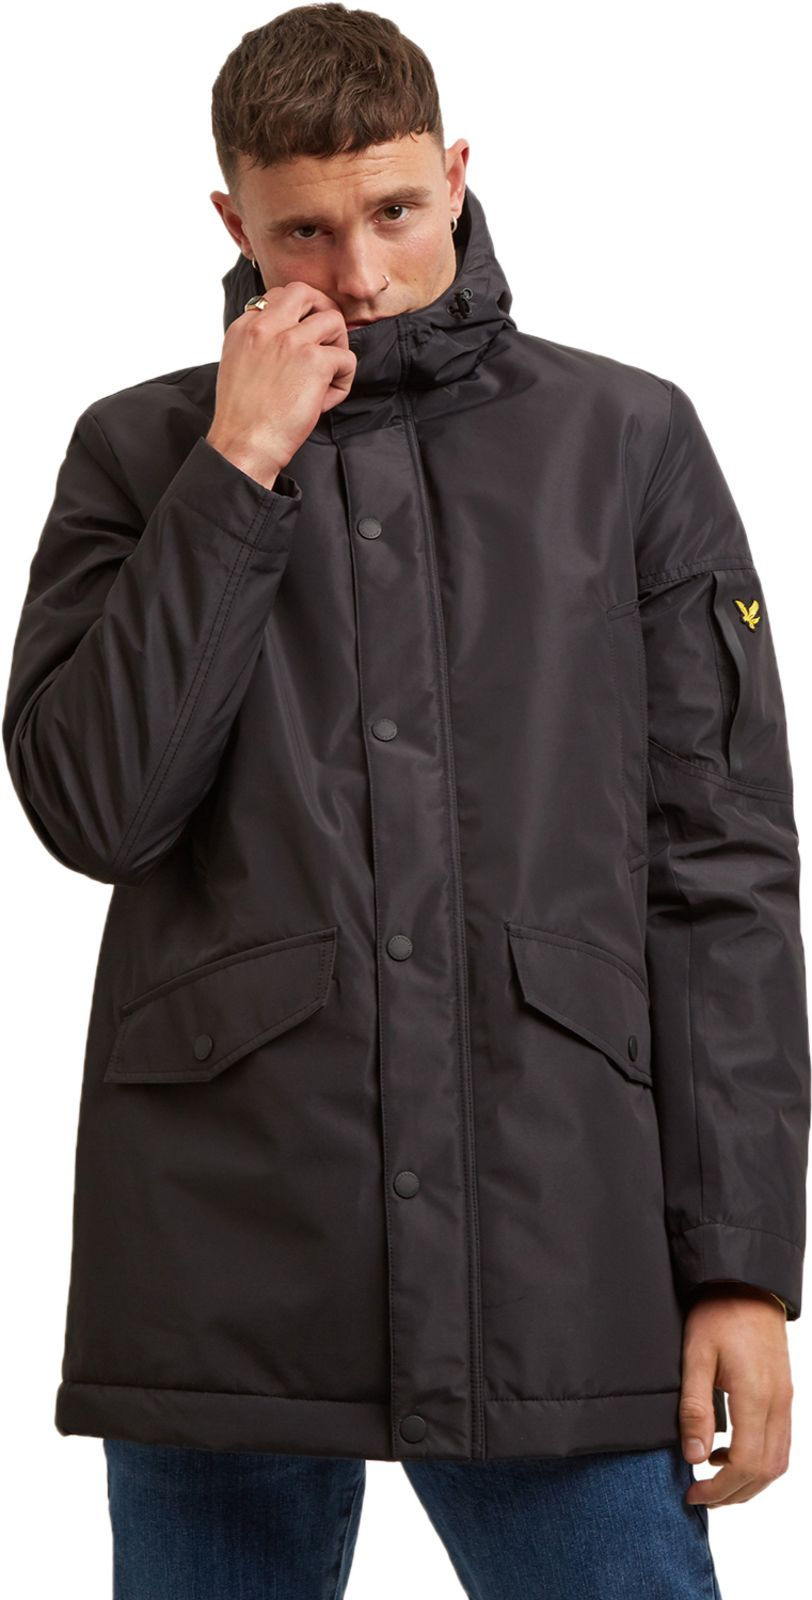 Lyle & Scott Technical Hooded Parka Jacket